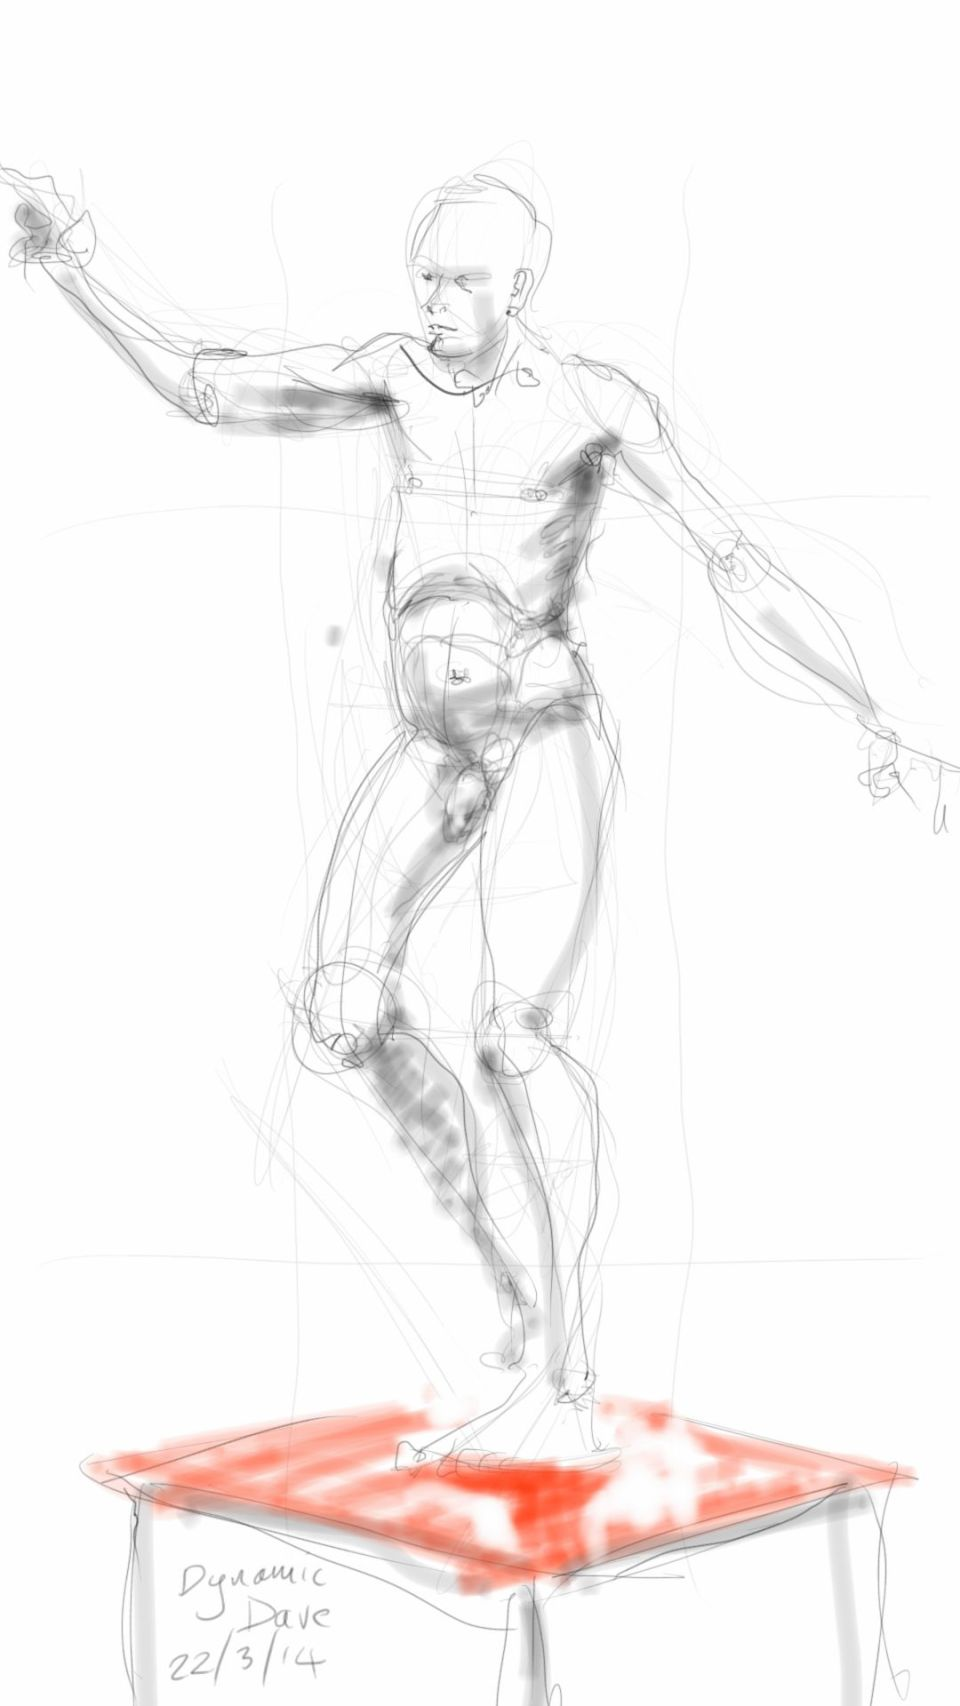 Dynamic Dave - nude study